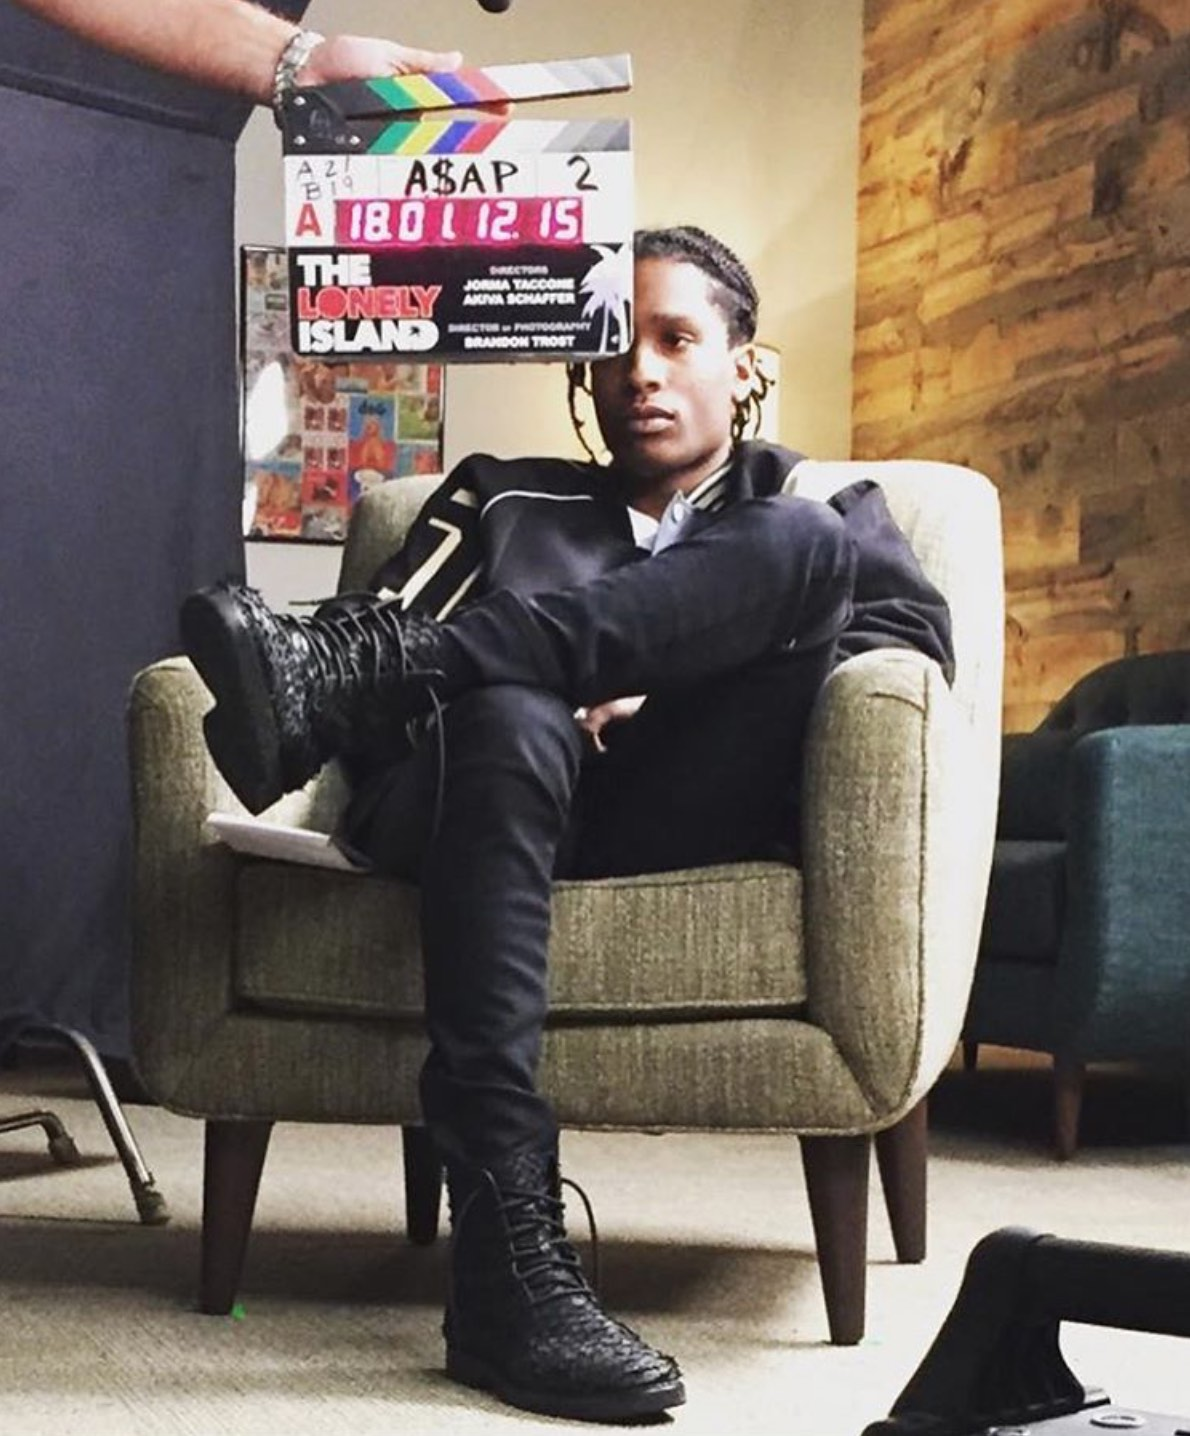 ASAP Rocky Wearing Maison Margiela Jacket And Alexander Wang Chukka Boots